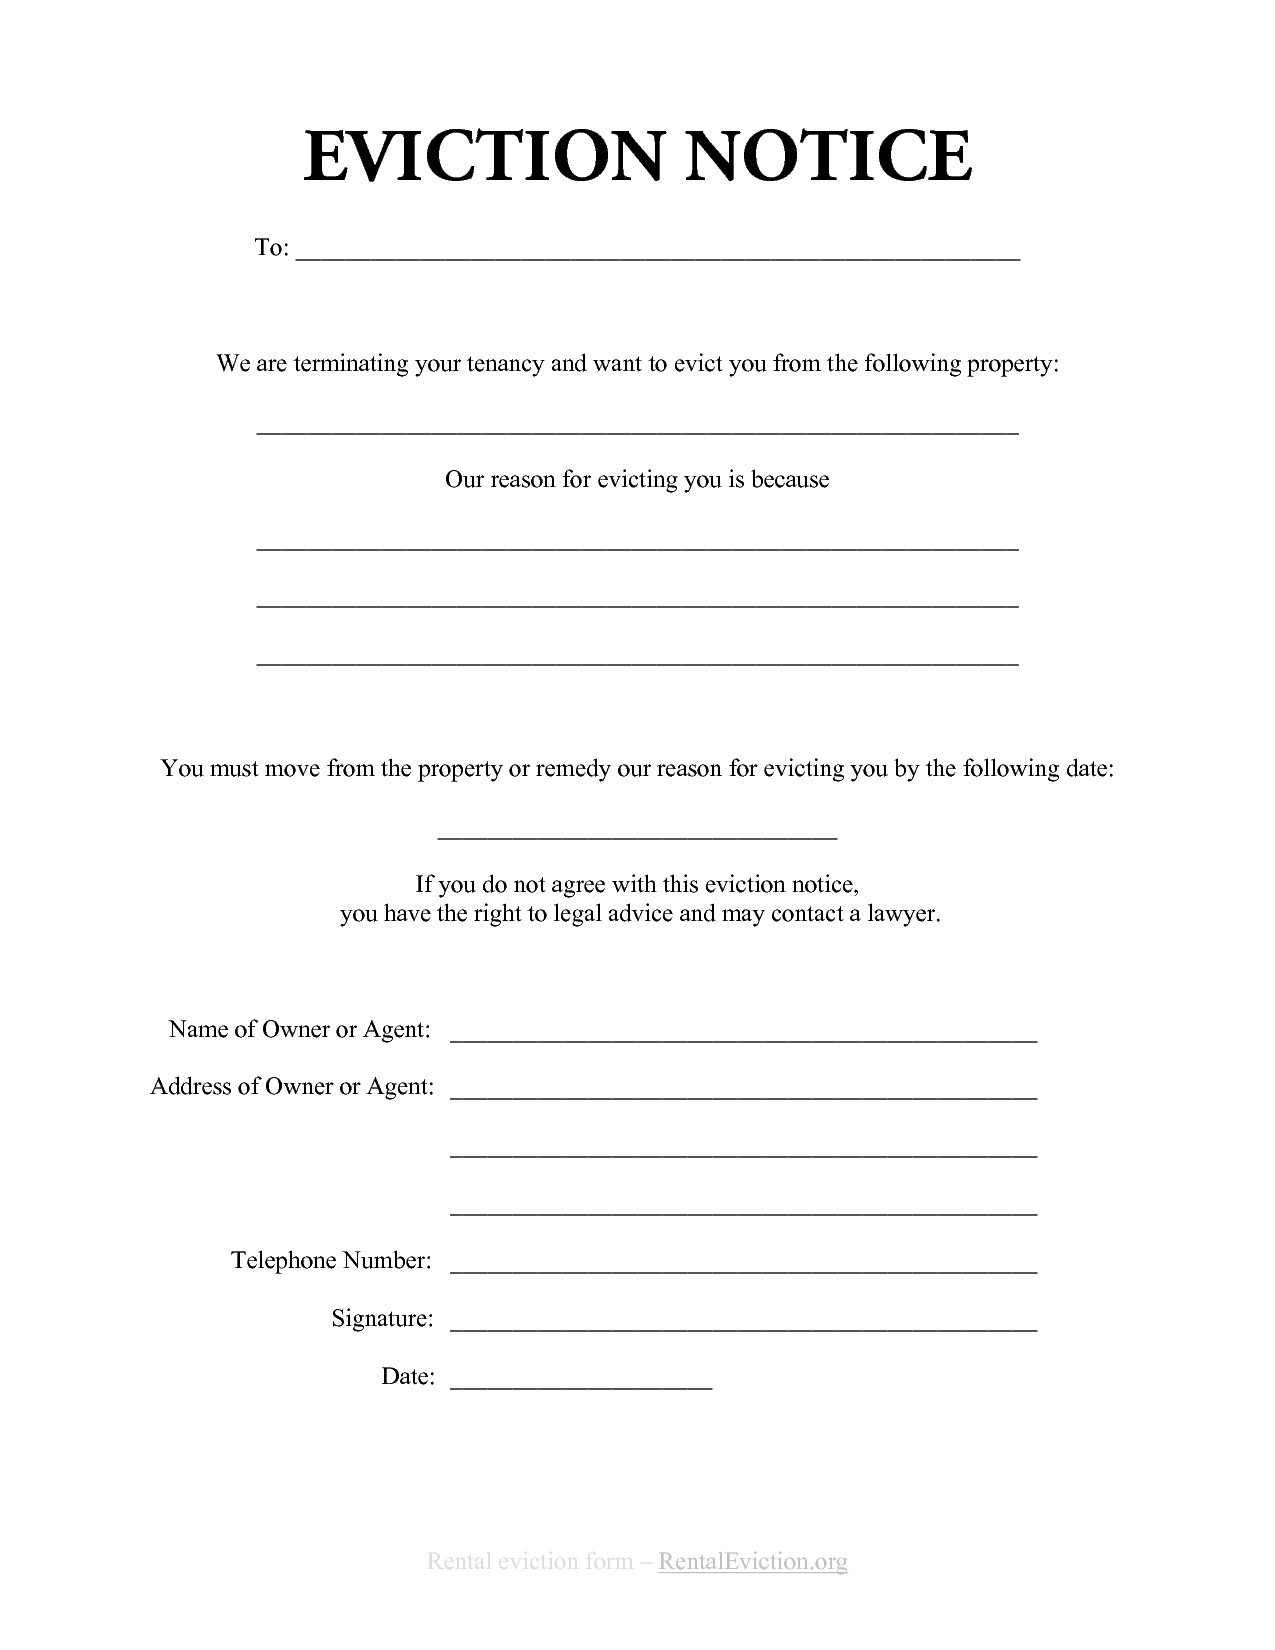 Eviction Notice Letter Template Free Print Out Eviction Notices